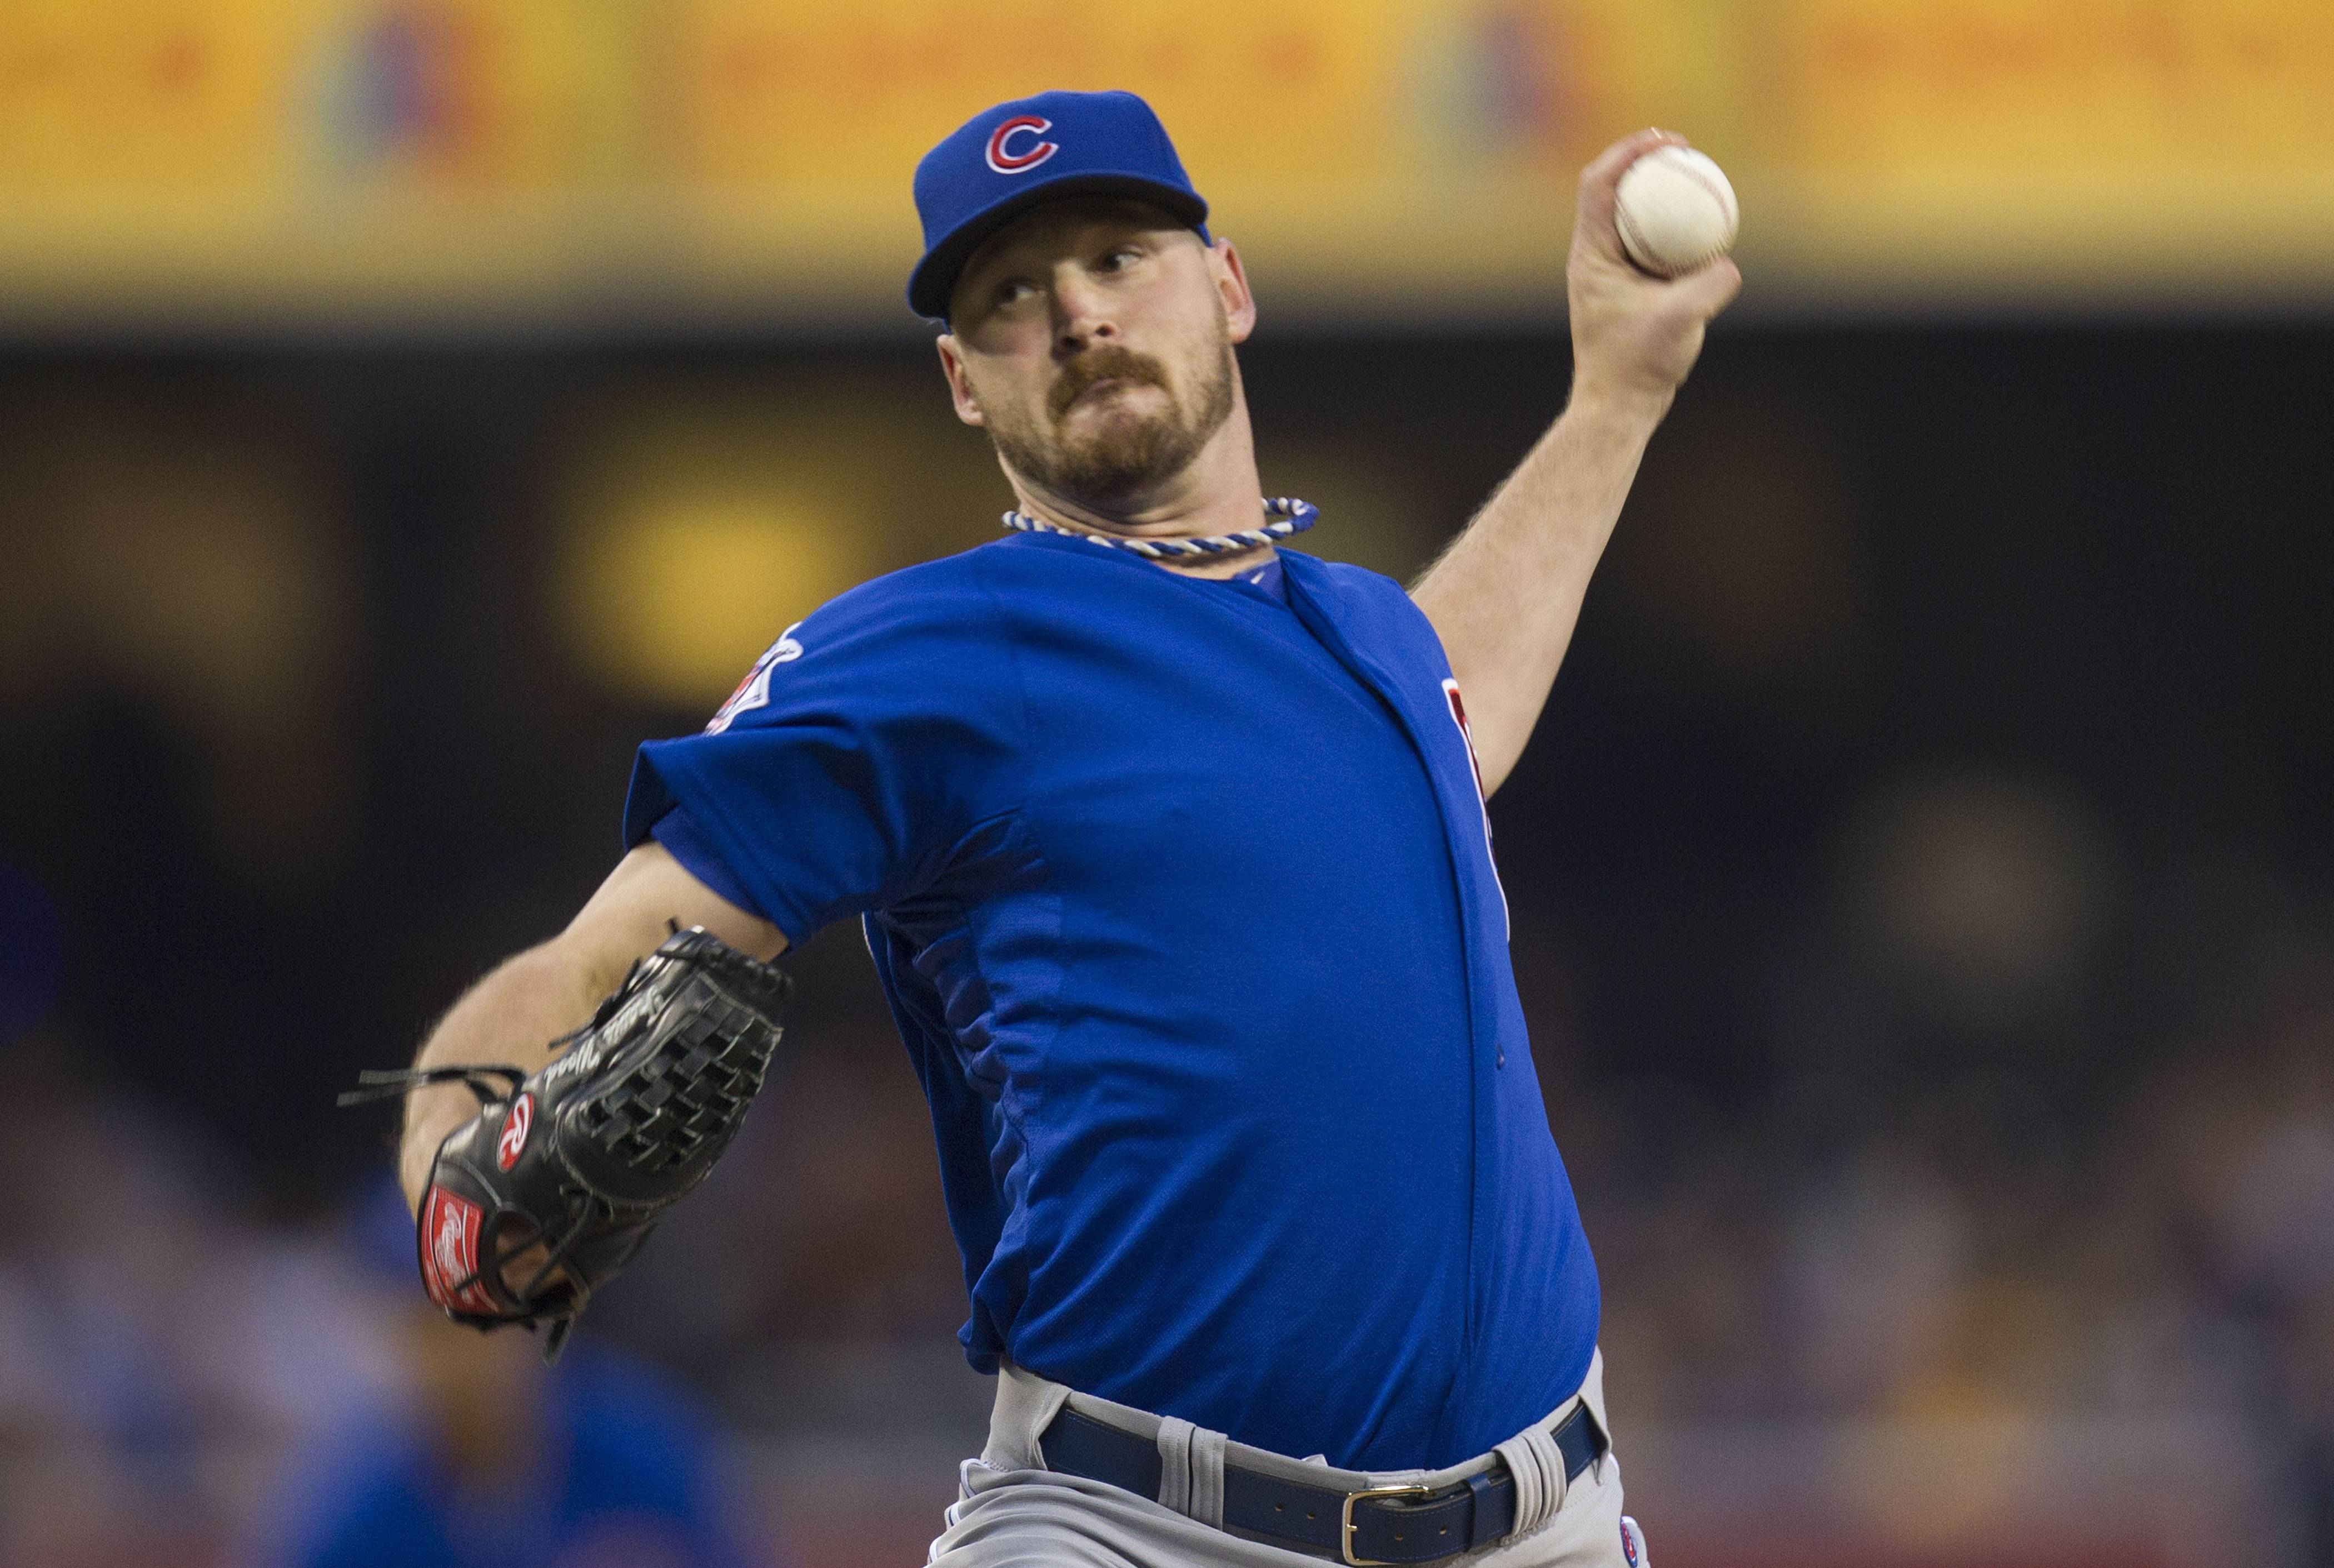 Cubs left-hander Travis Wood came within five outs of pitching his first career shutout before allowing Carlos Quentin's pinch-hit, two-run home run, and the Cubs held on to beat the San Diego Padres 3-2 Saturday night. Wood (5-4) hit an RBI single and Luis Valbuena homered for the Cubs, who bounced back from an 11-1 loss Friday night.